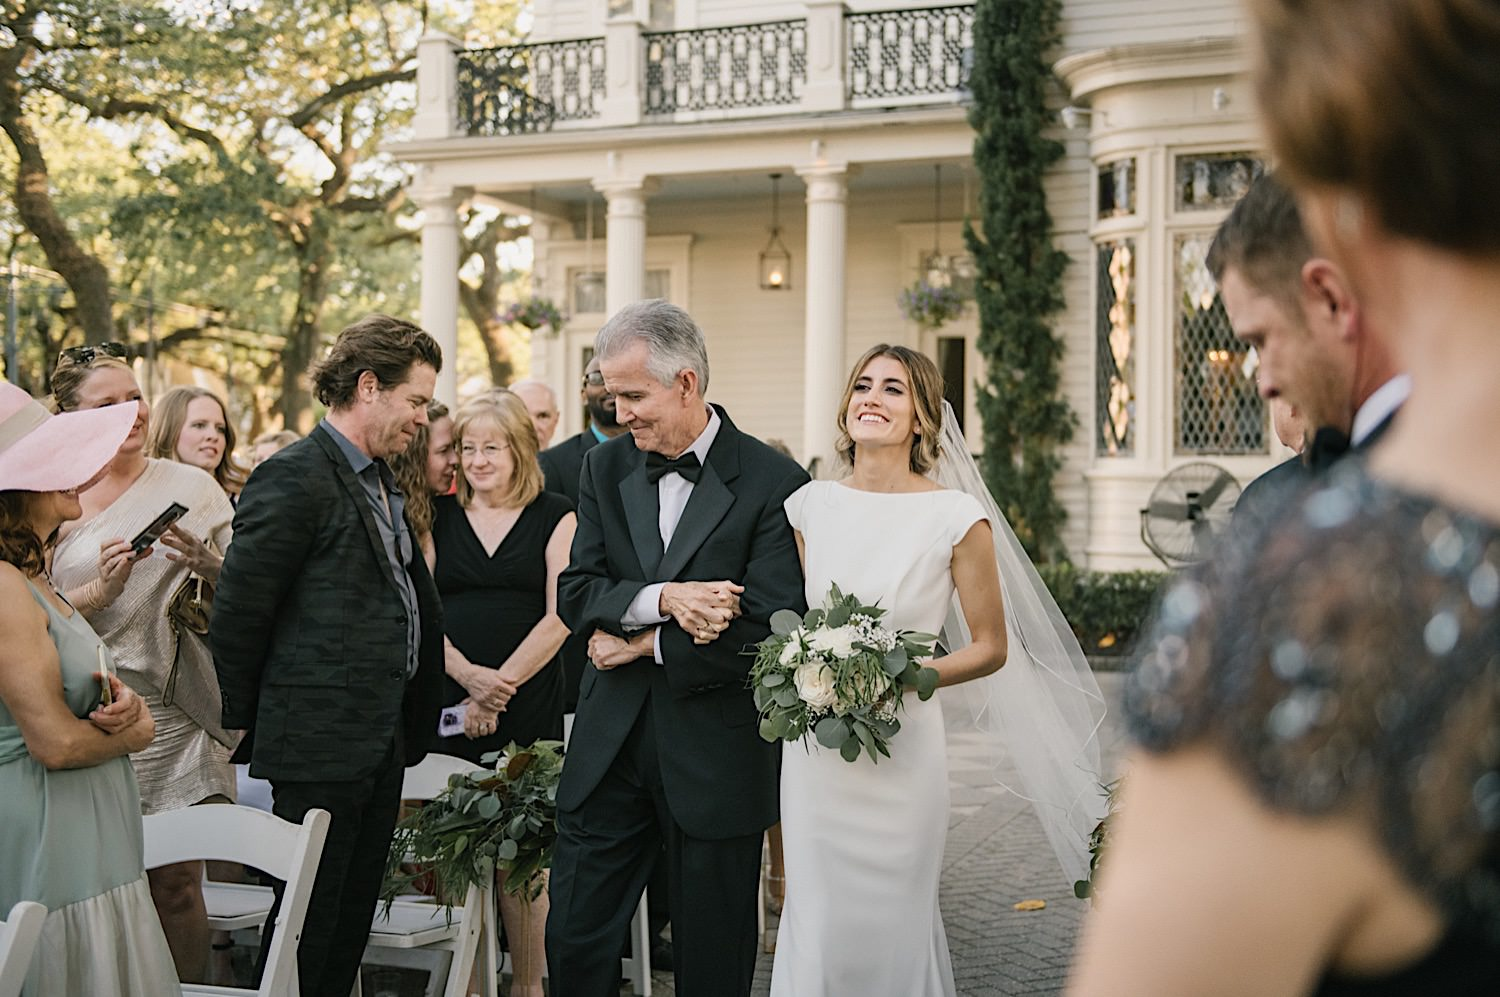 Taylors father walks her down the isle in the courtyard of the Elms Mansion.